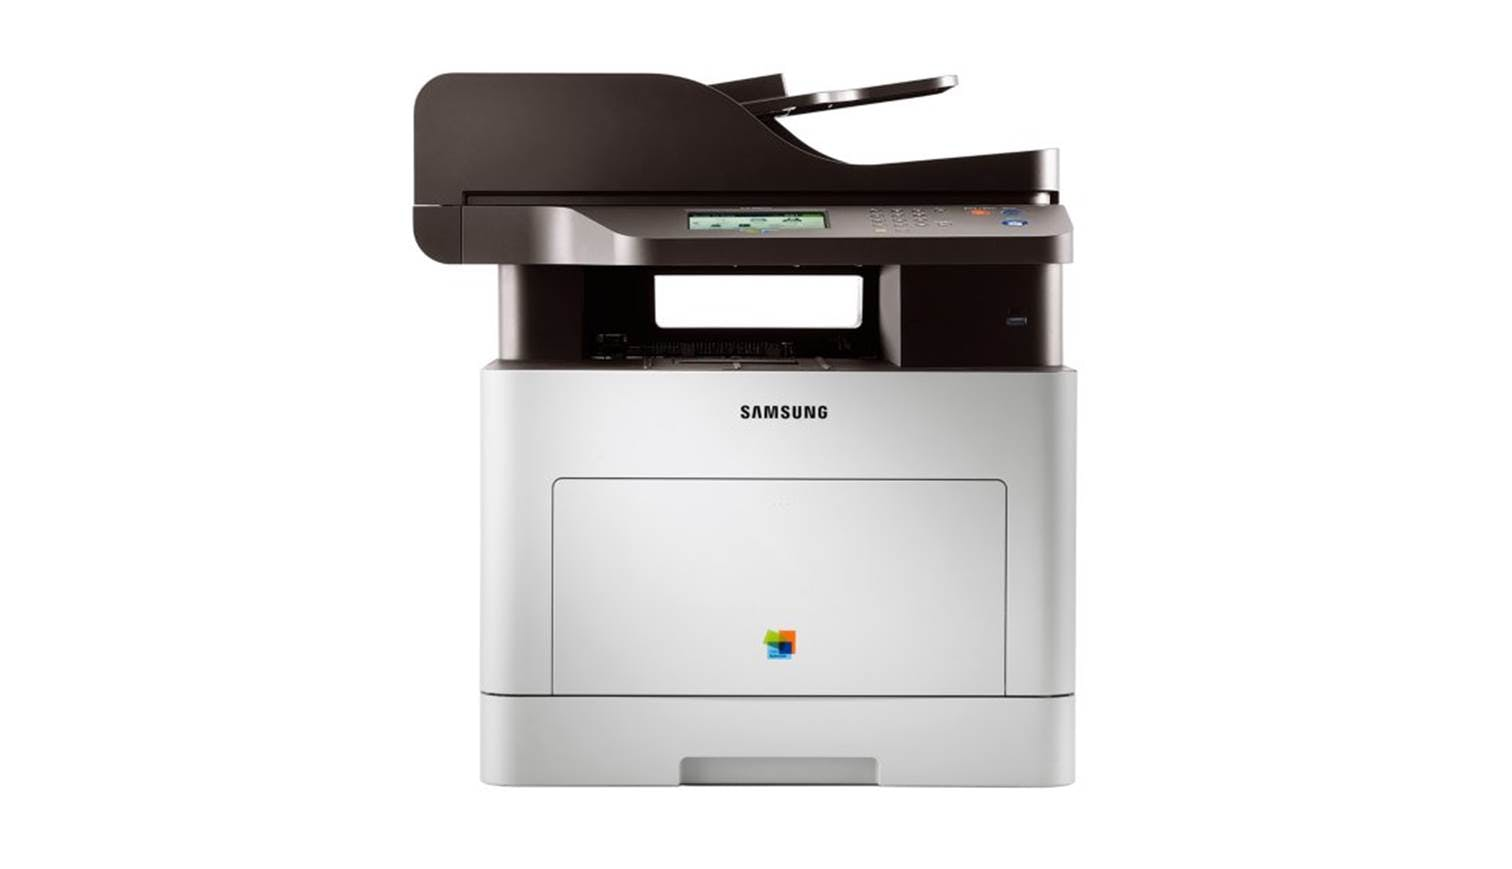 Printer All In One Brother Canon Samsung More Wiring Car Audio Promotionshop For Promotional Clx 6260fw Colour Multifunction